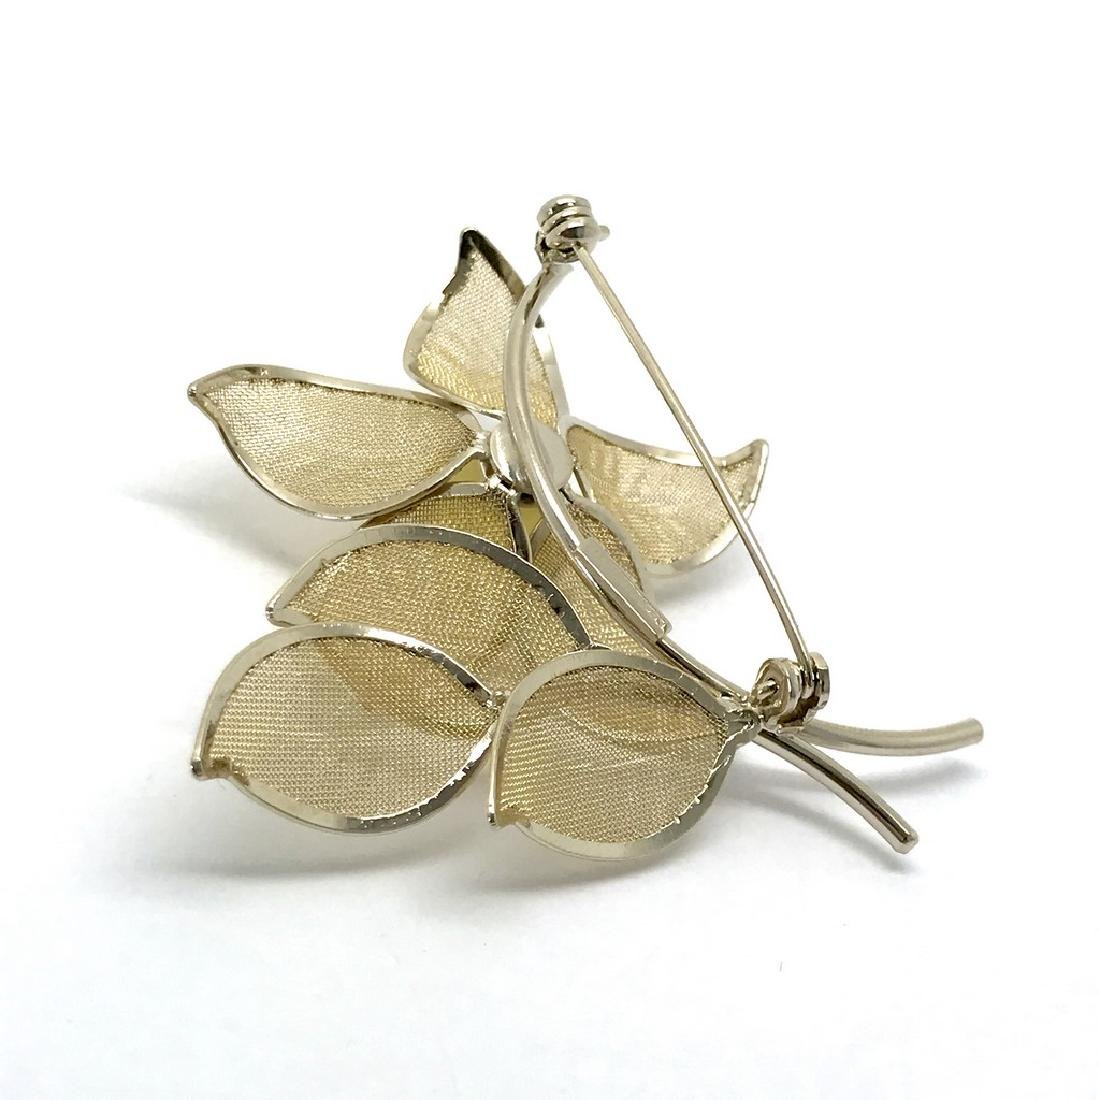 Vintage style gold-plated brooch 57x56mm with Baltic - 5